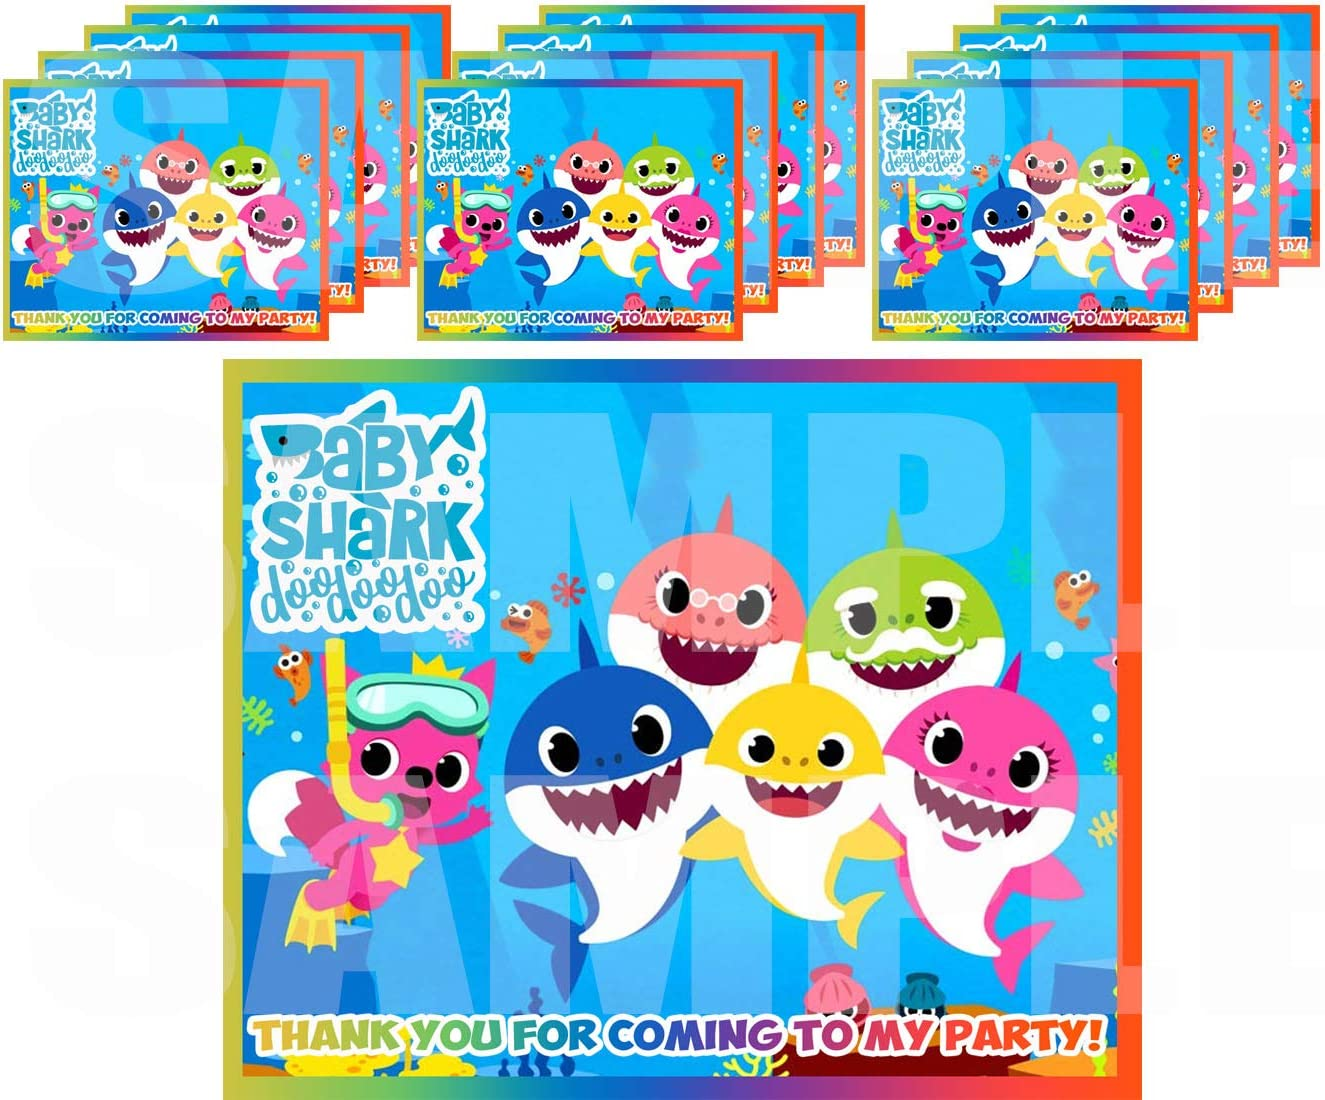 """Little Shark for Baby Shower Stickers Gift Bag Label Stickers ONLY 3.75"""" x 4.75"""" for Loot Bags Party Favors Supplies Decorations -12 pcs First 1st Birthday Infant Toddler Mommy Daddy Grandma Grandpa"""